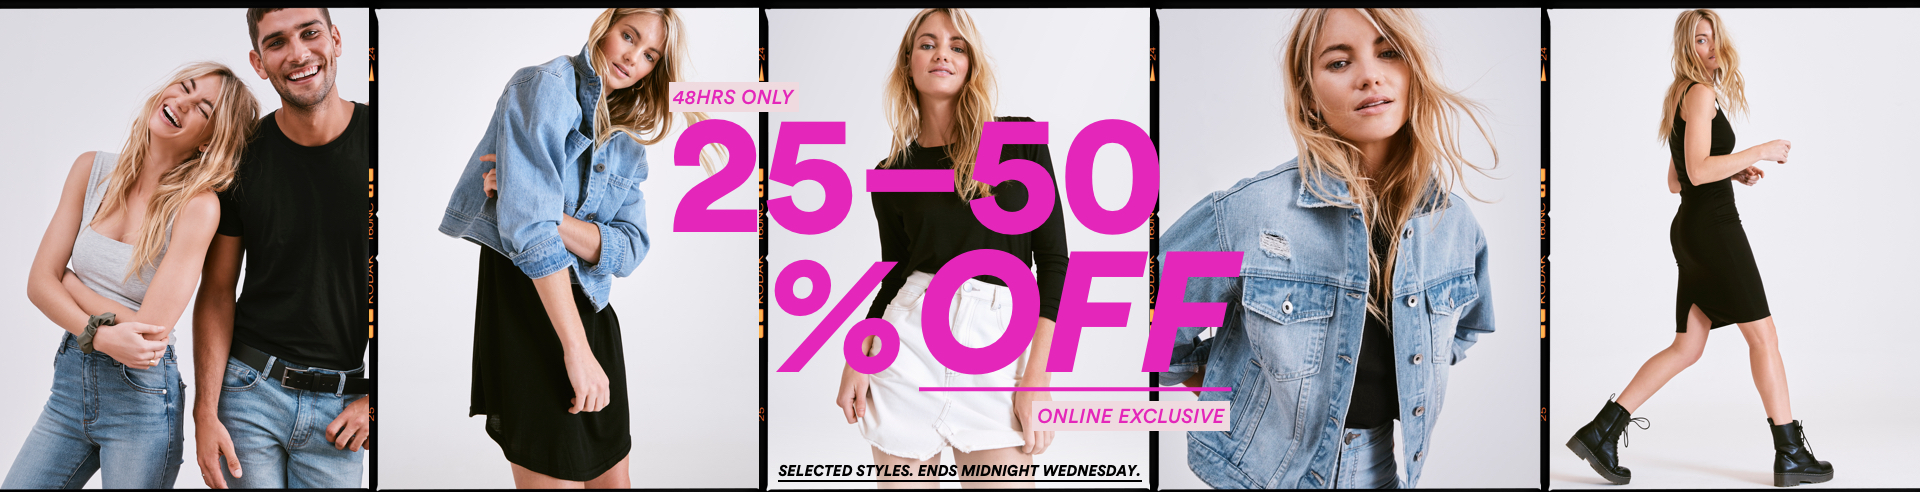 48 hours only. 30 to 50 percent off. Online Exclusive. Click to shop.